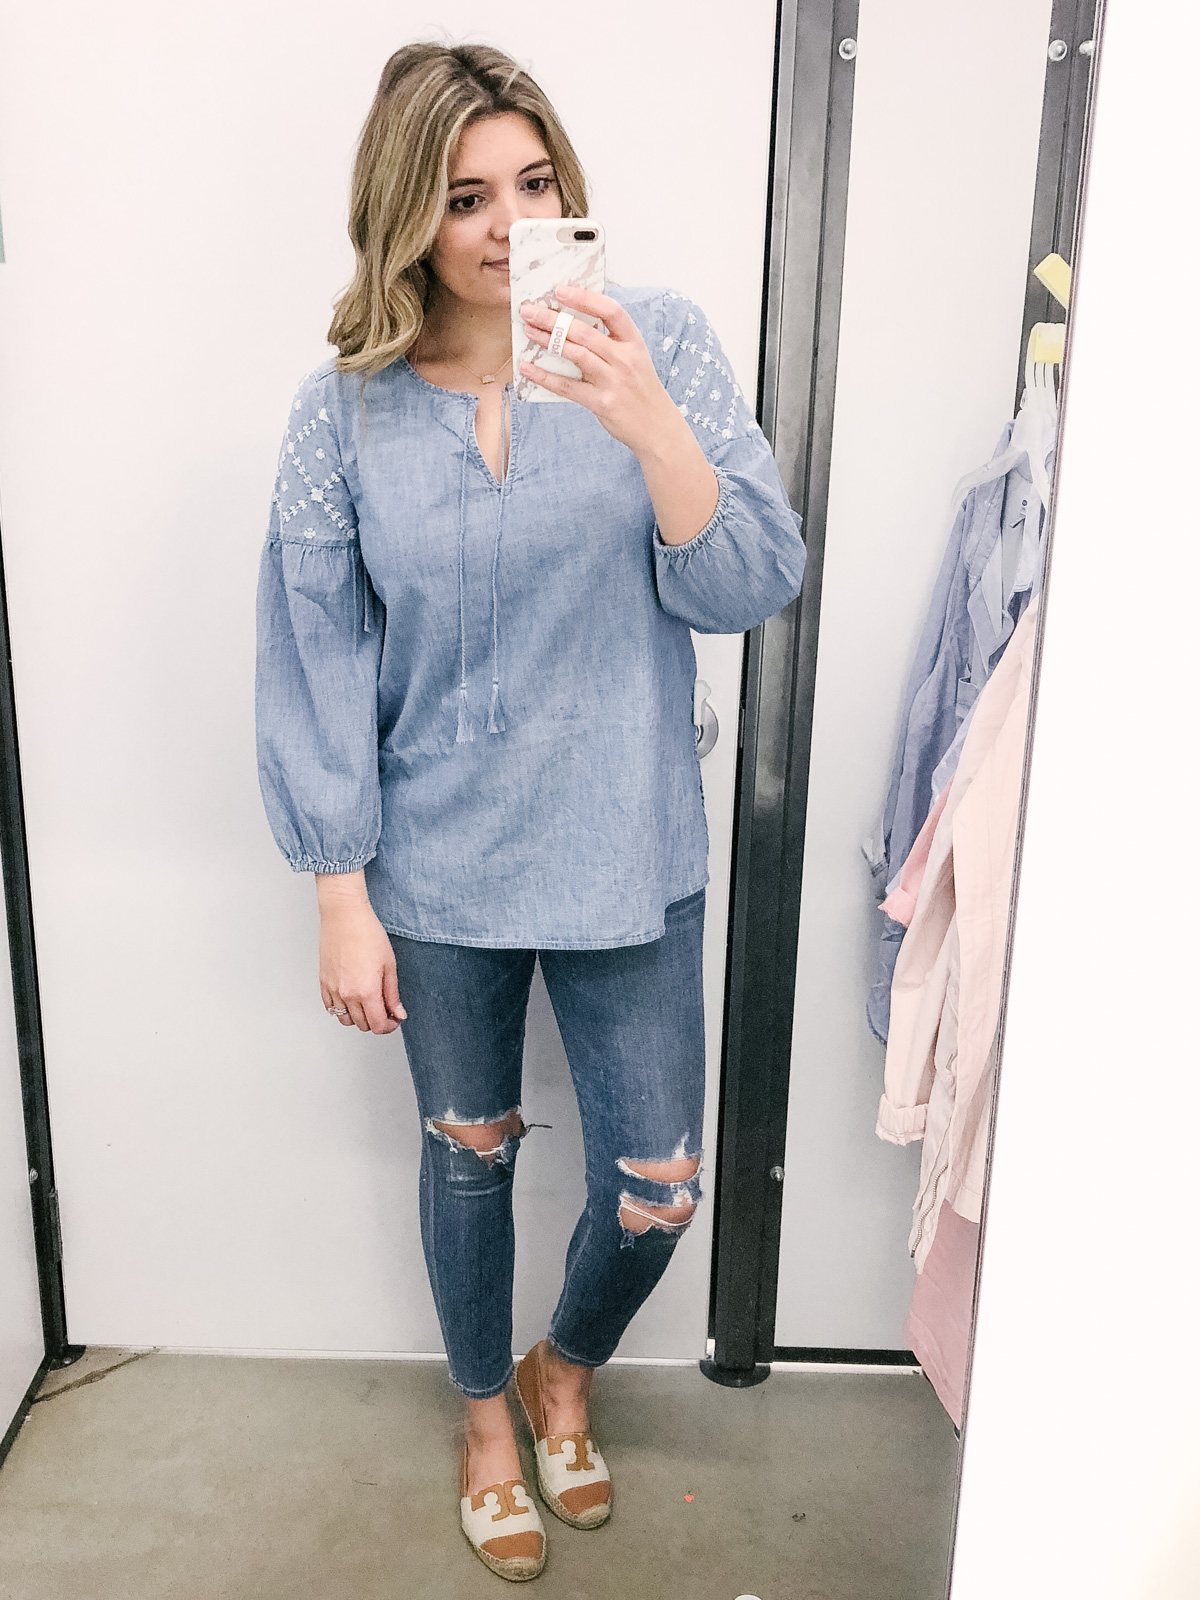 old navy dressing room reviews spring 2018 | See the full try-on session + Old Navy spring reviews at bylaurenm.com!